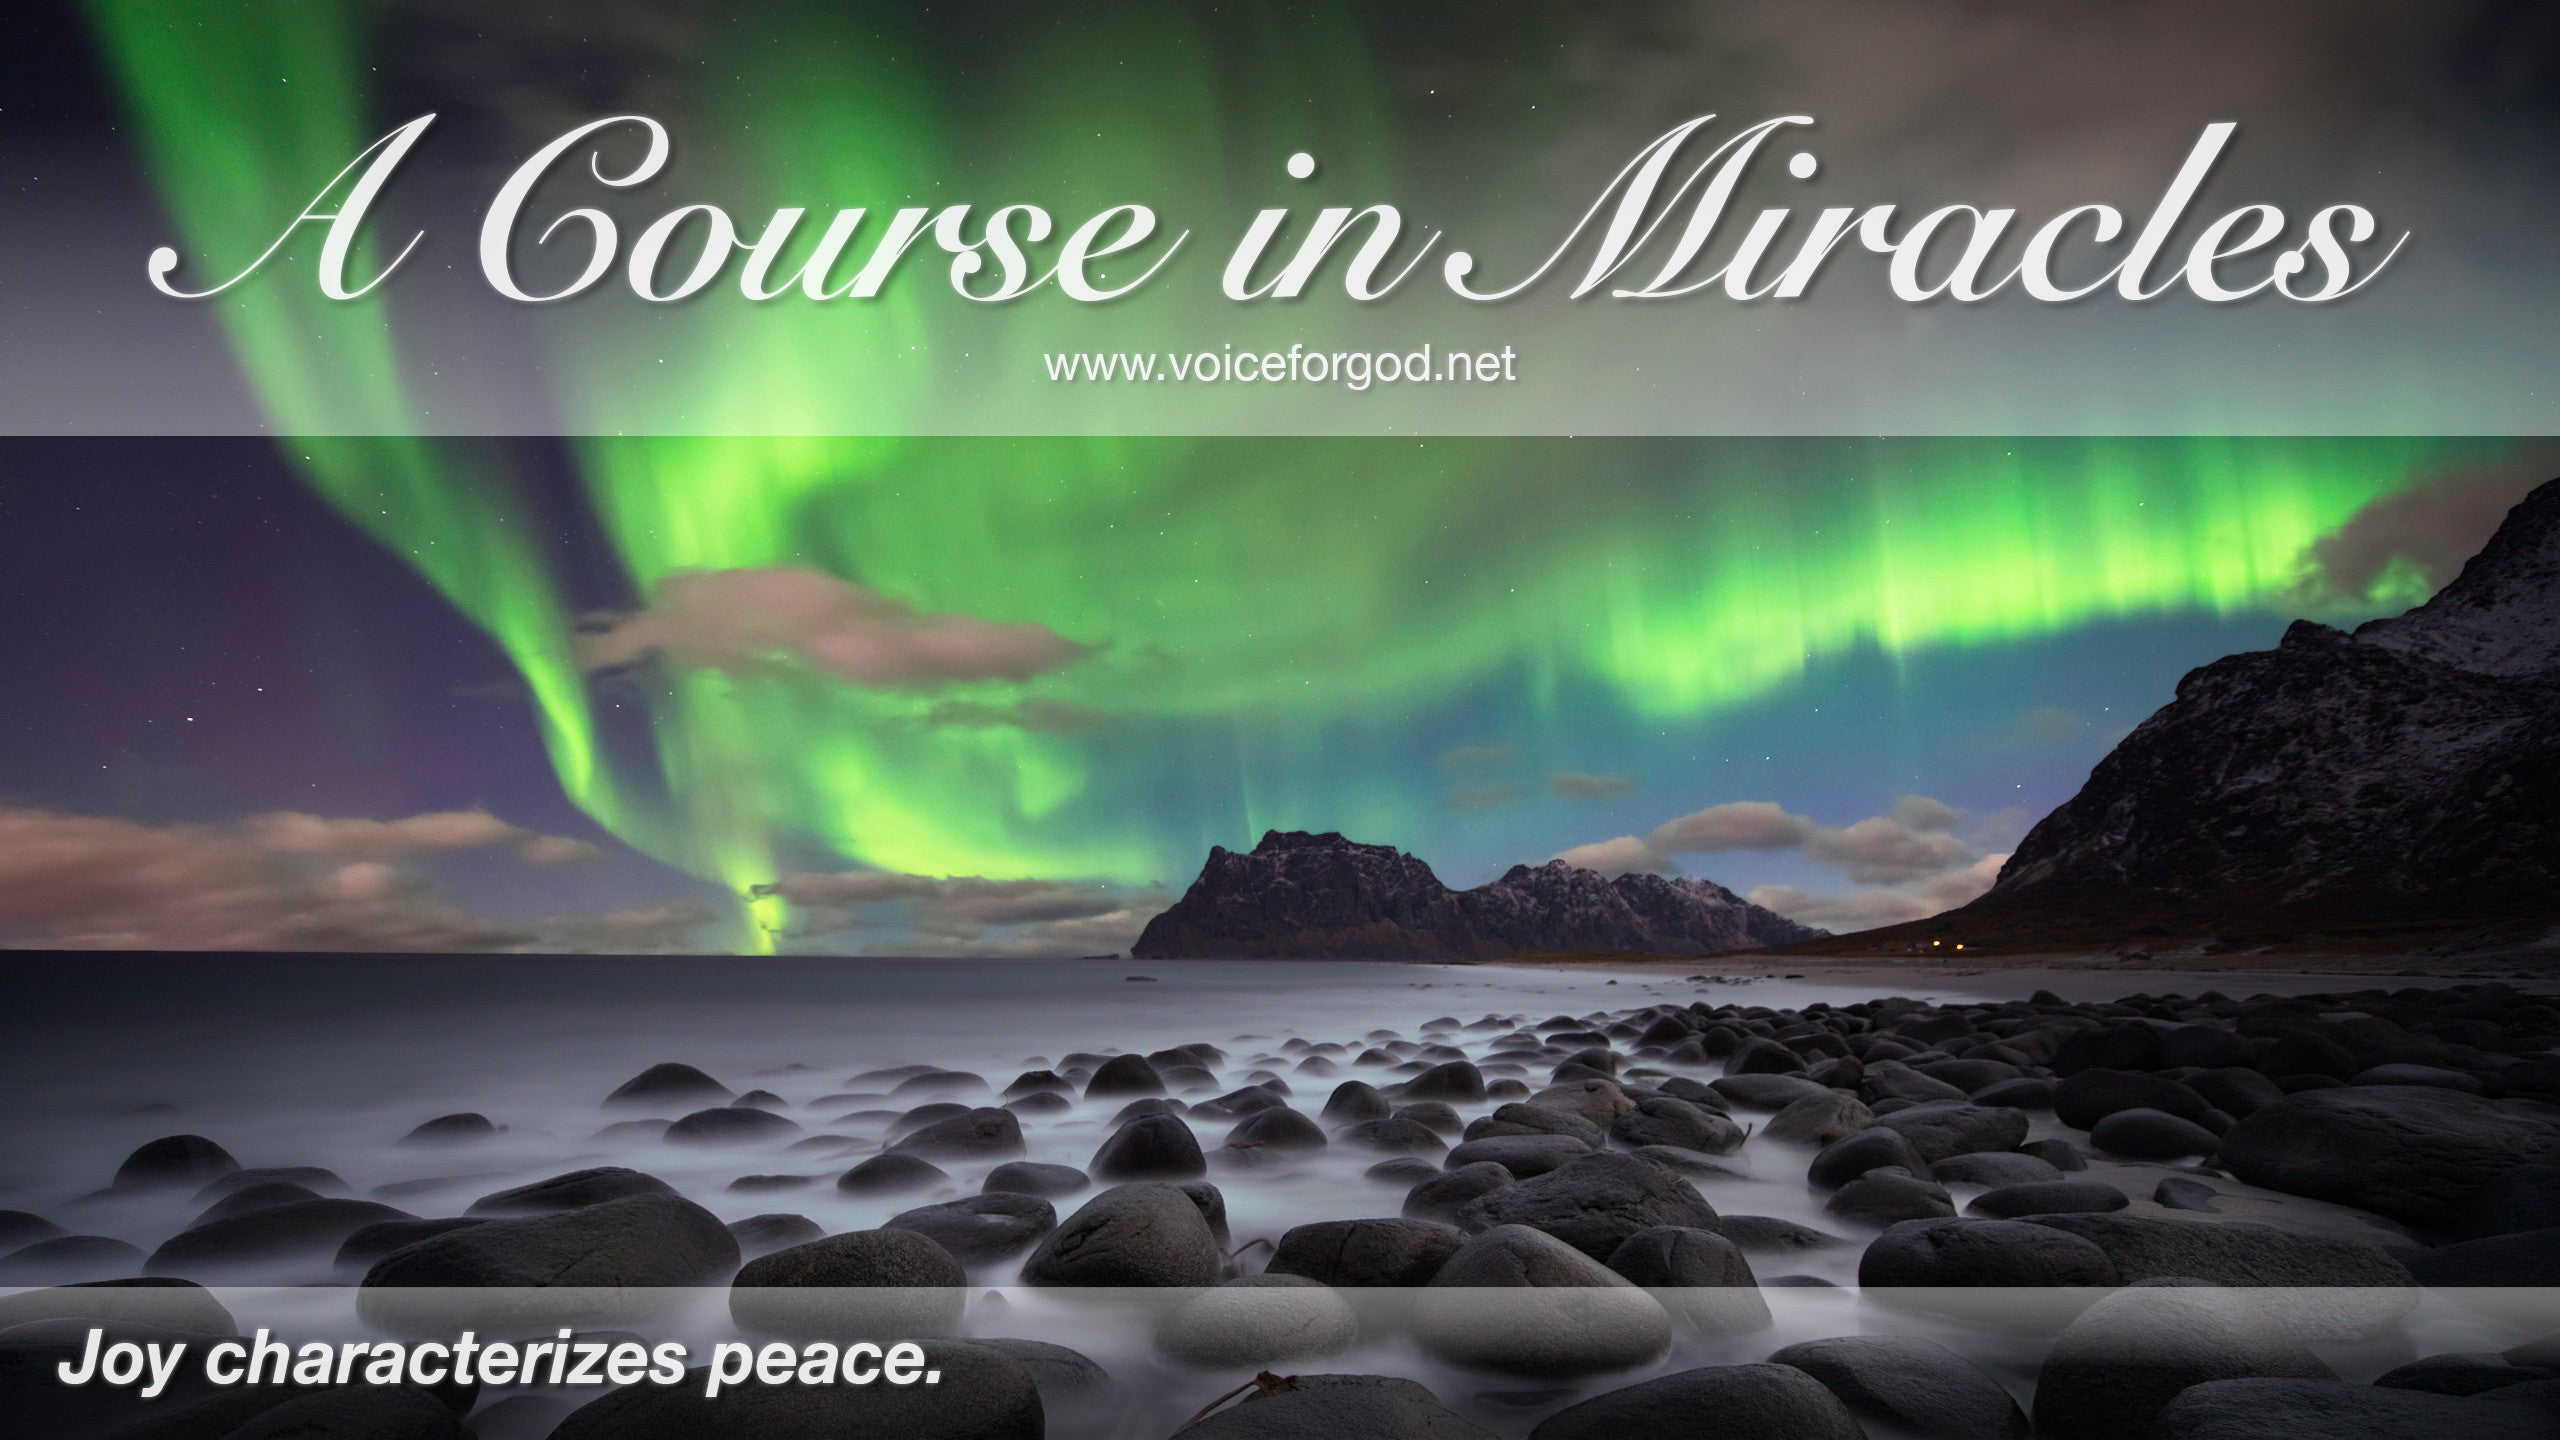 A Course In Miracles Quotes Acim Acim Quote 0015 A Course In Miracles Quotes  Voice For God